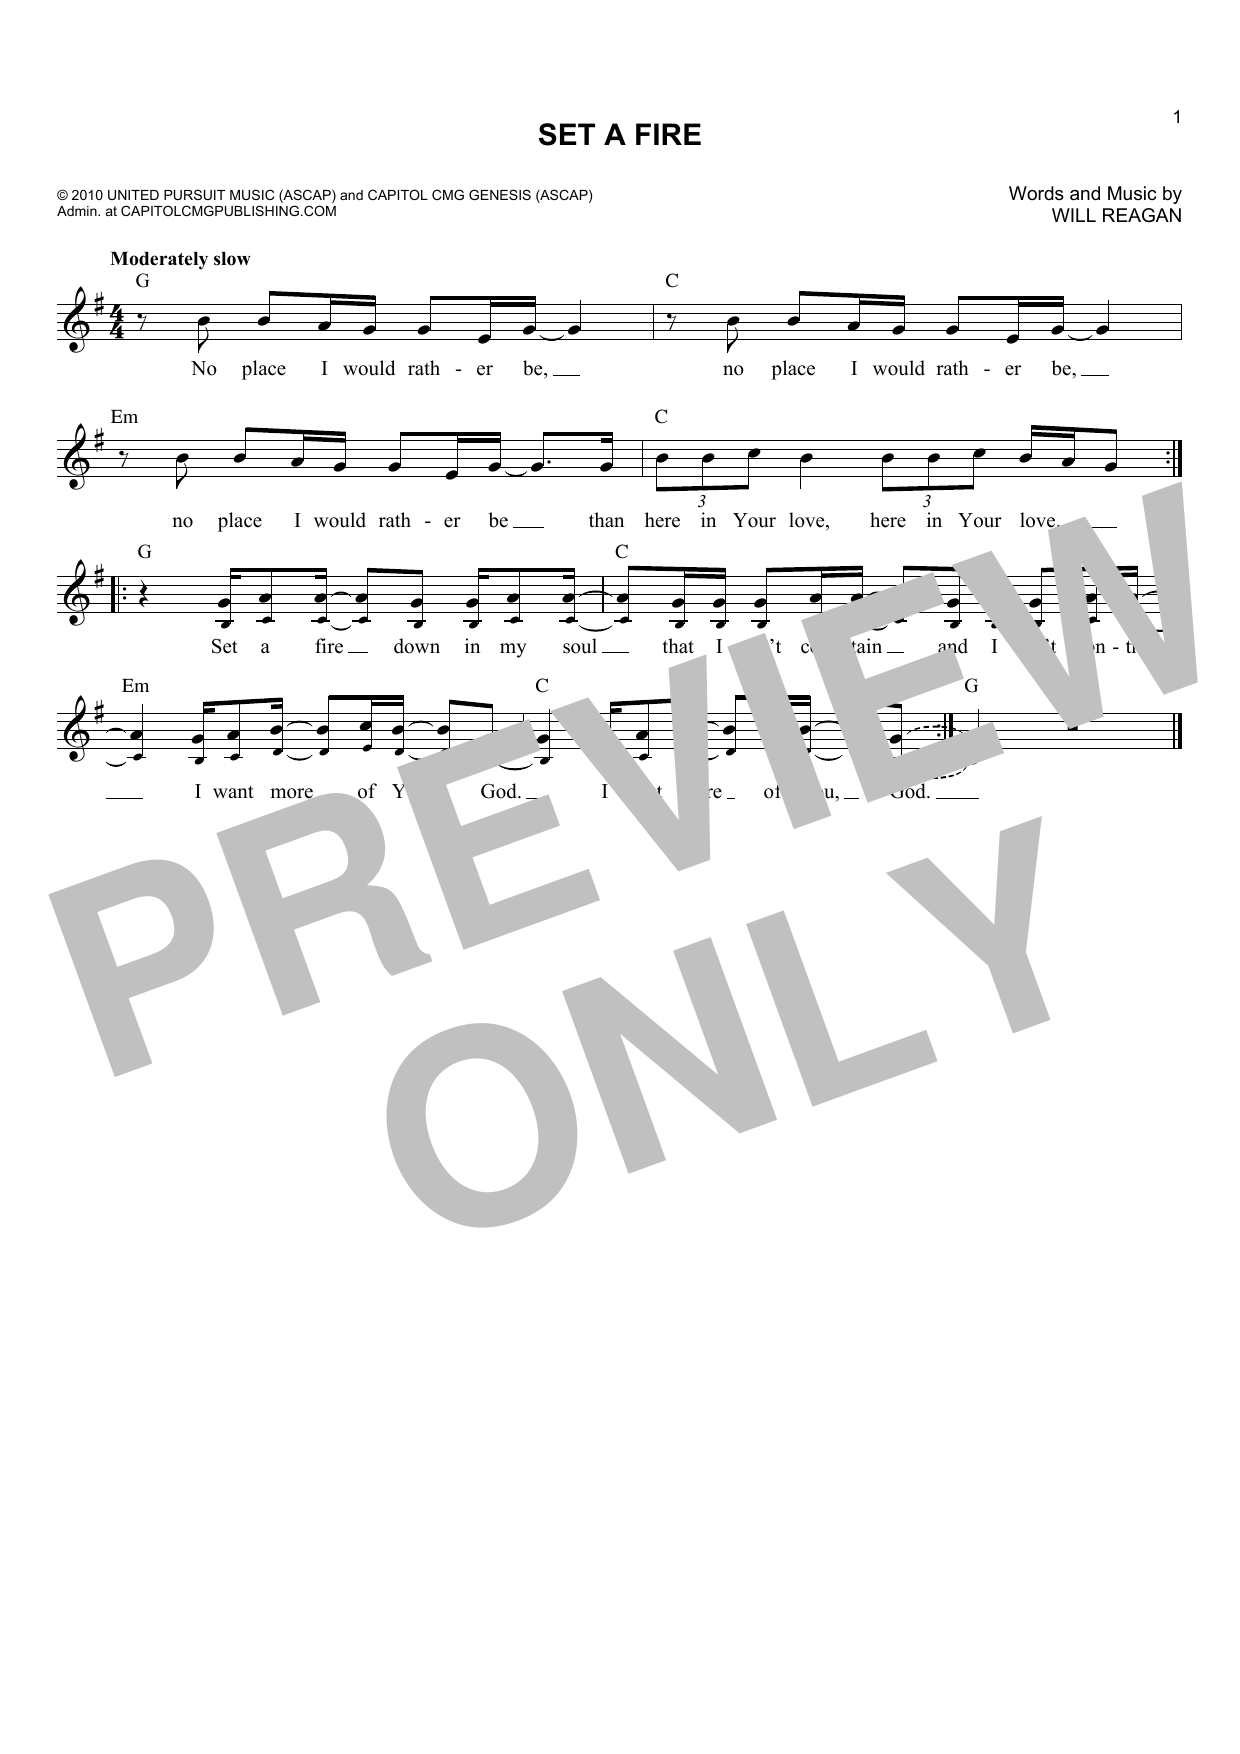 Will Reagan Set A Fire sheet music notes and chords. Download Printable PDF.